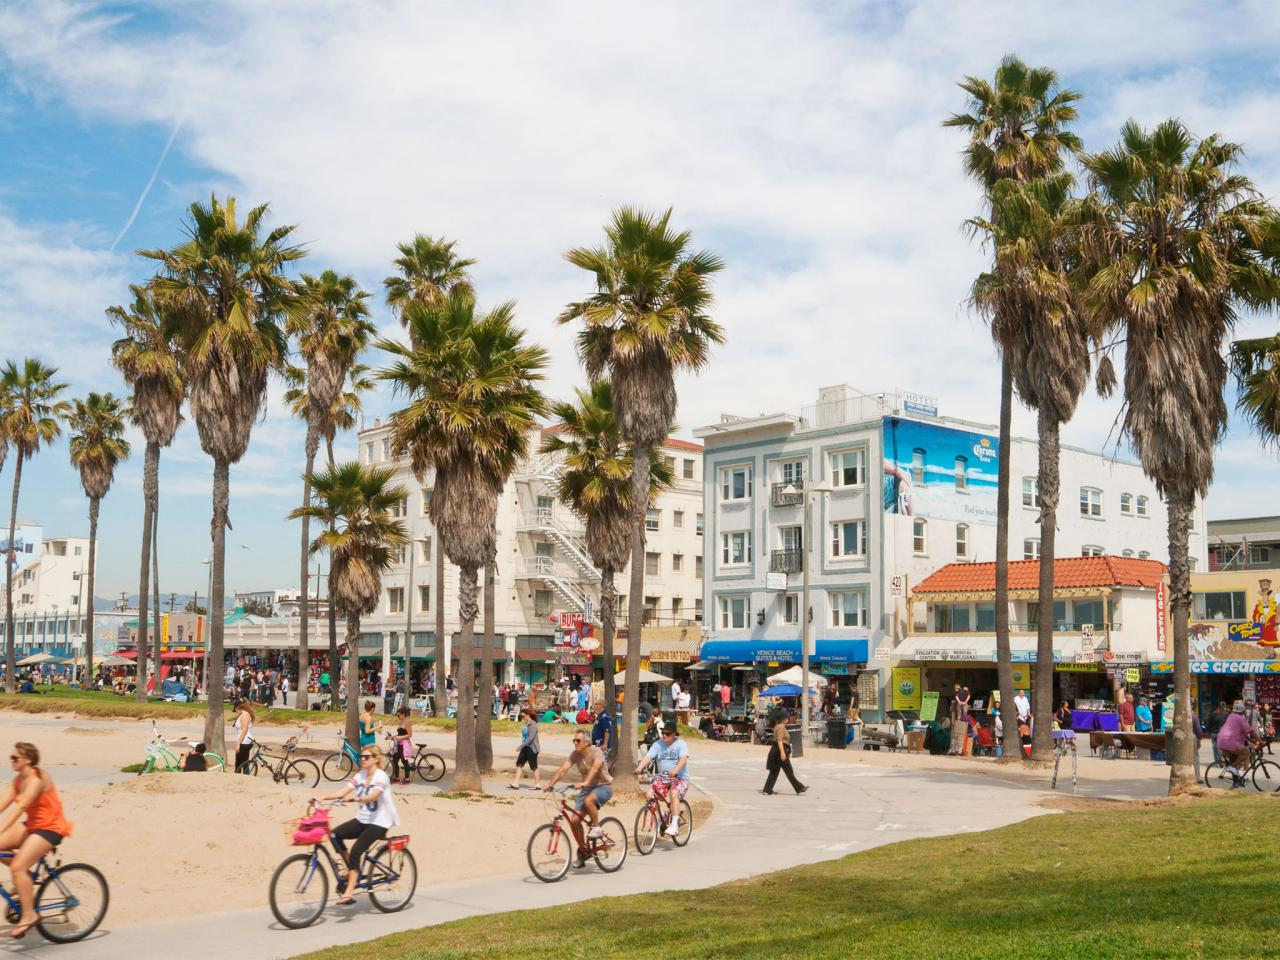 Top 10 Things To Do In Venice Beach